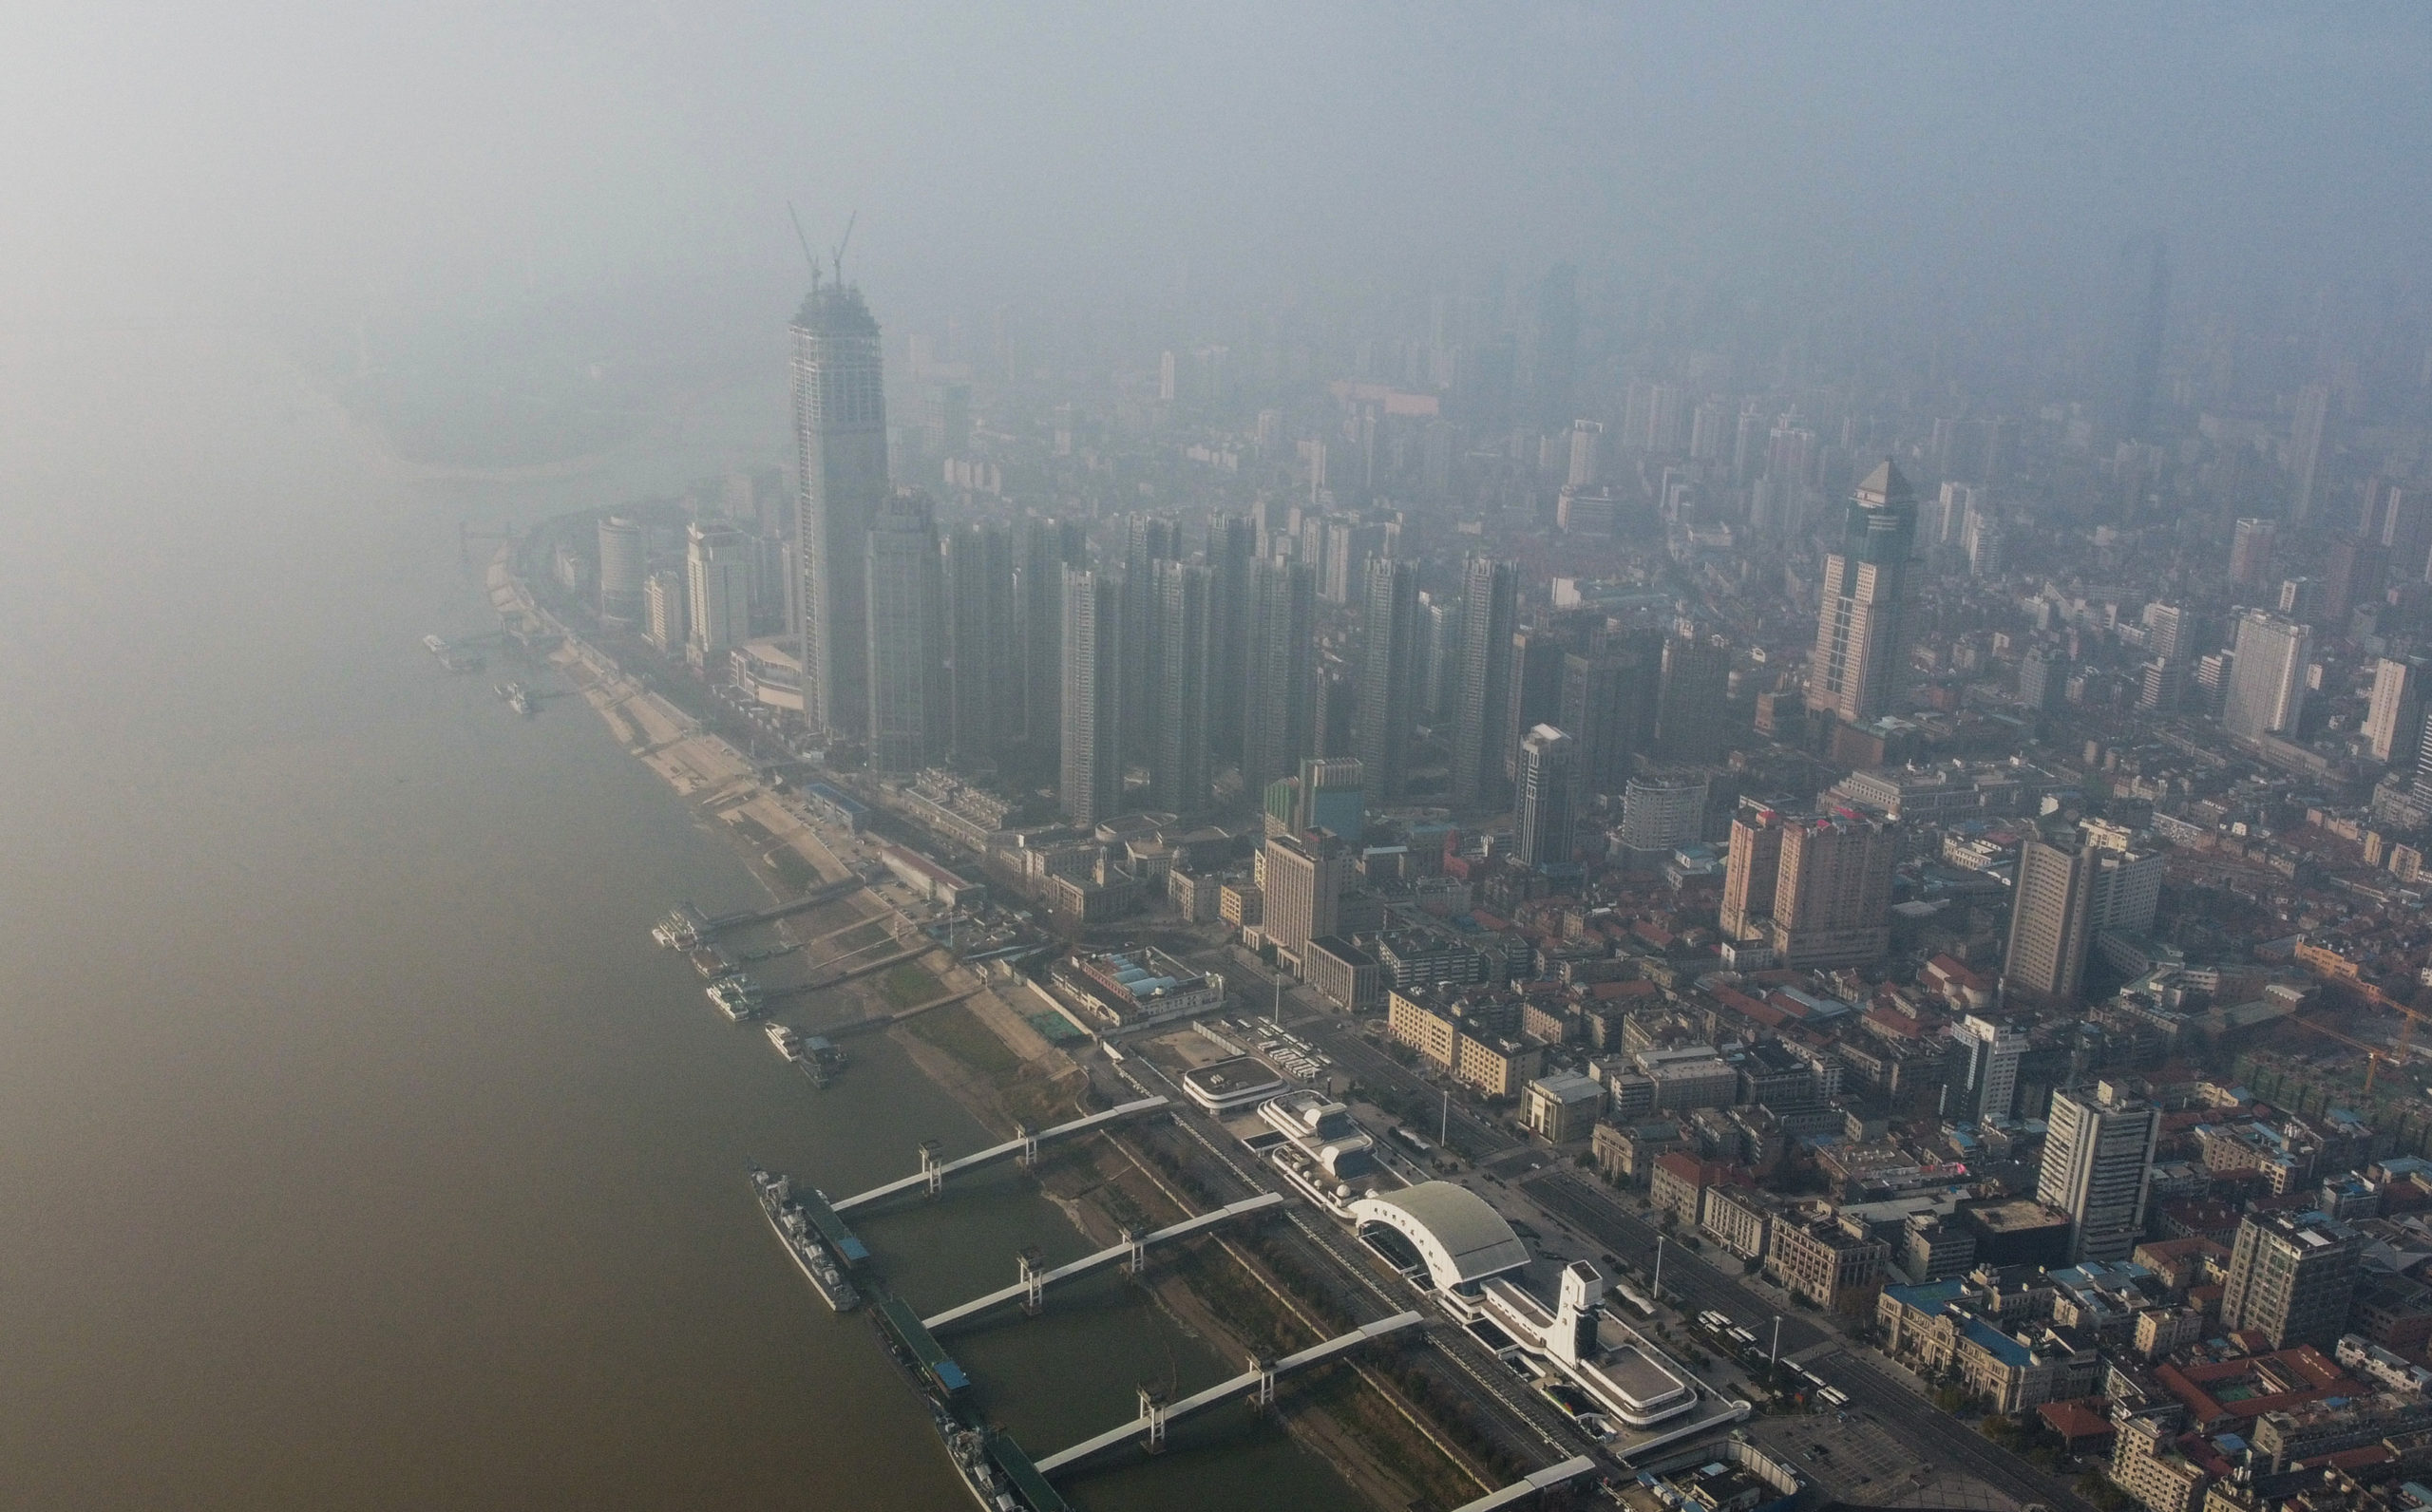 An aerial view shows residential and commercial buildings of Wuhan in China's central Hubei province on January 27, 2020, amid a deadly virus outbreak in the city. - The deadly new coronavirus that has broken out in China, 2019-nCoV, will afflict a minimum of tens of thousands of people and will last at least several months, researchers estimate based on the first available data. (Photo by Hector RETAMAL / AFP) (Photo by HECTOR RETAMAL/AFP via Getty Images)